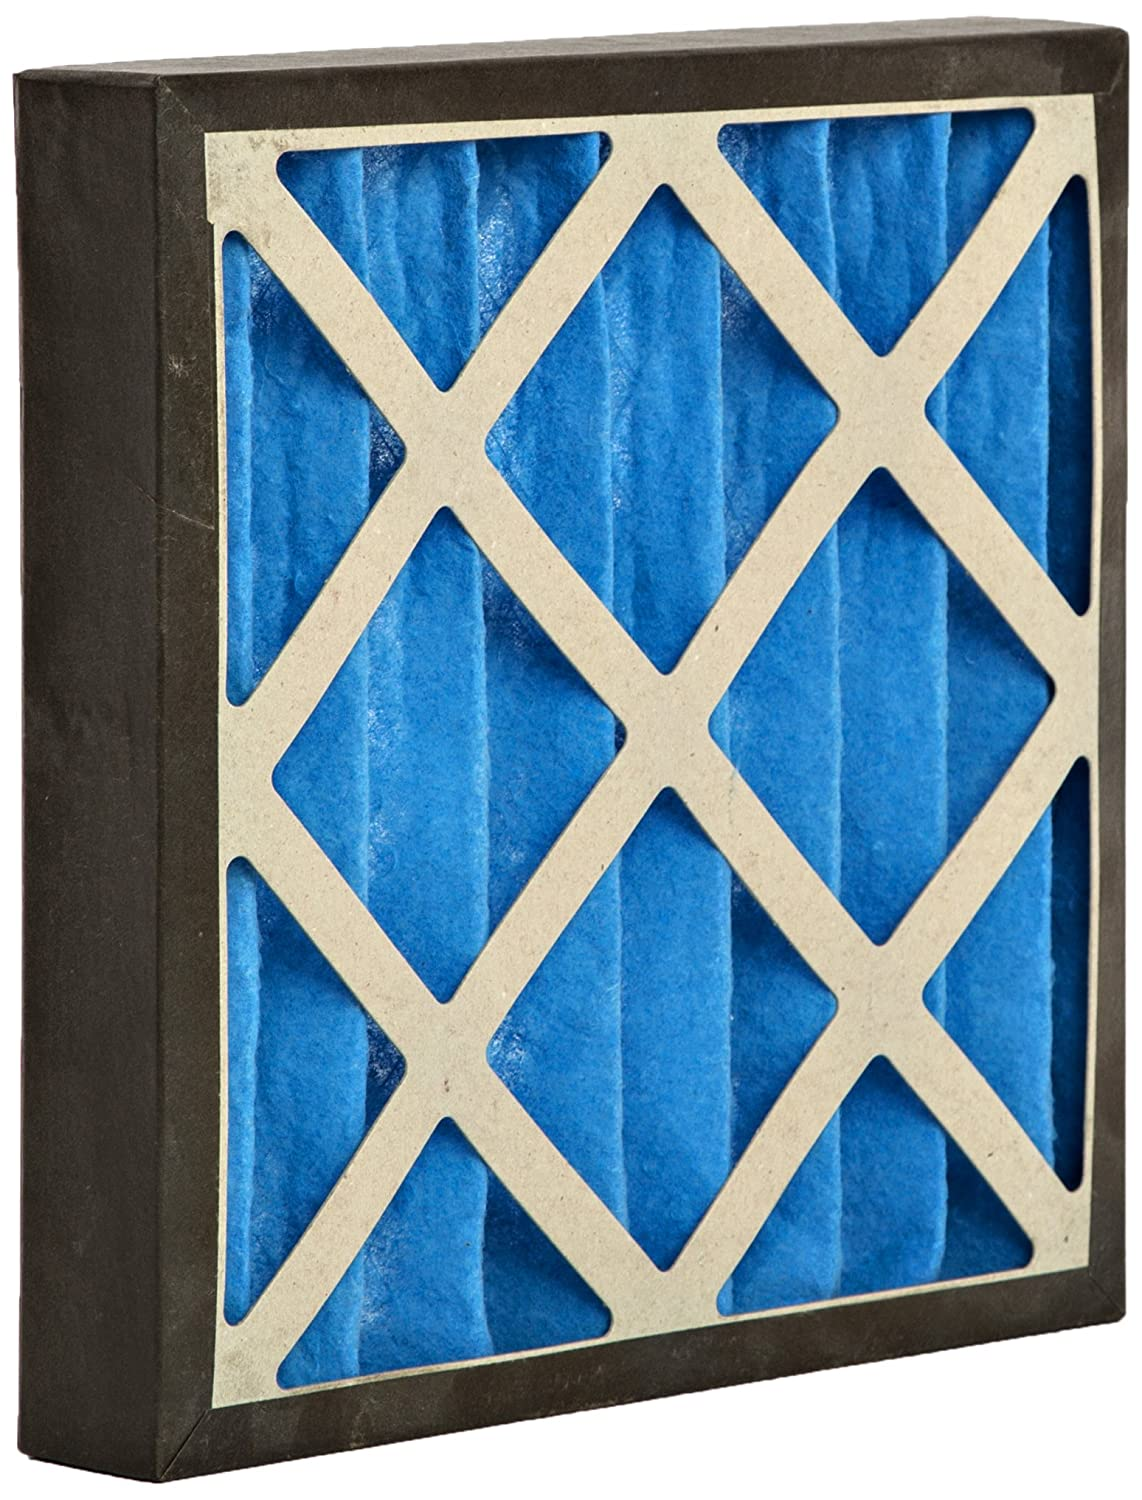 GVS Filter Technology G4P.15.15.4.SUA001.005 G4 Pleated Panel Filter, Blue/White (Pack of 5)